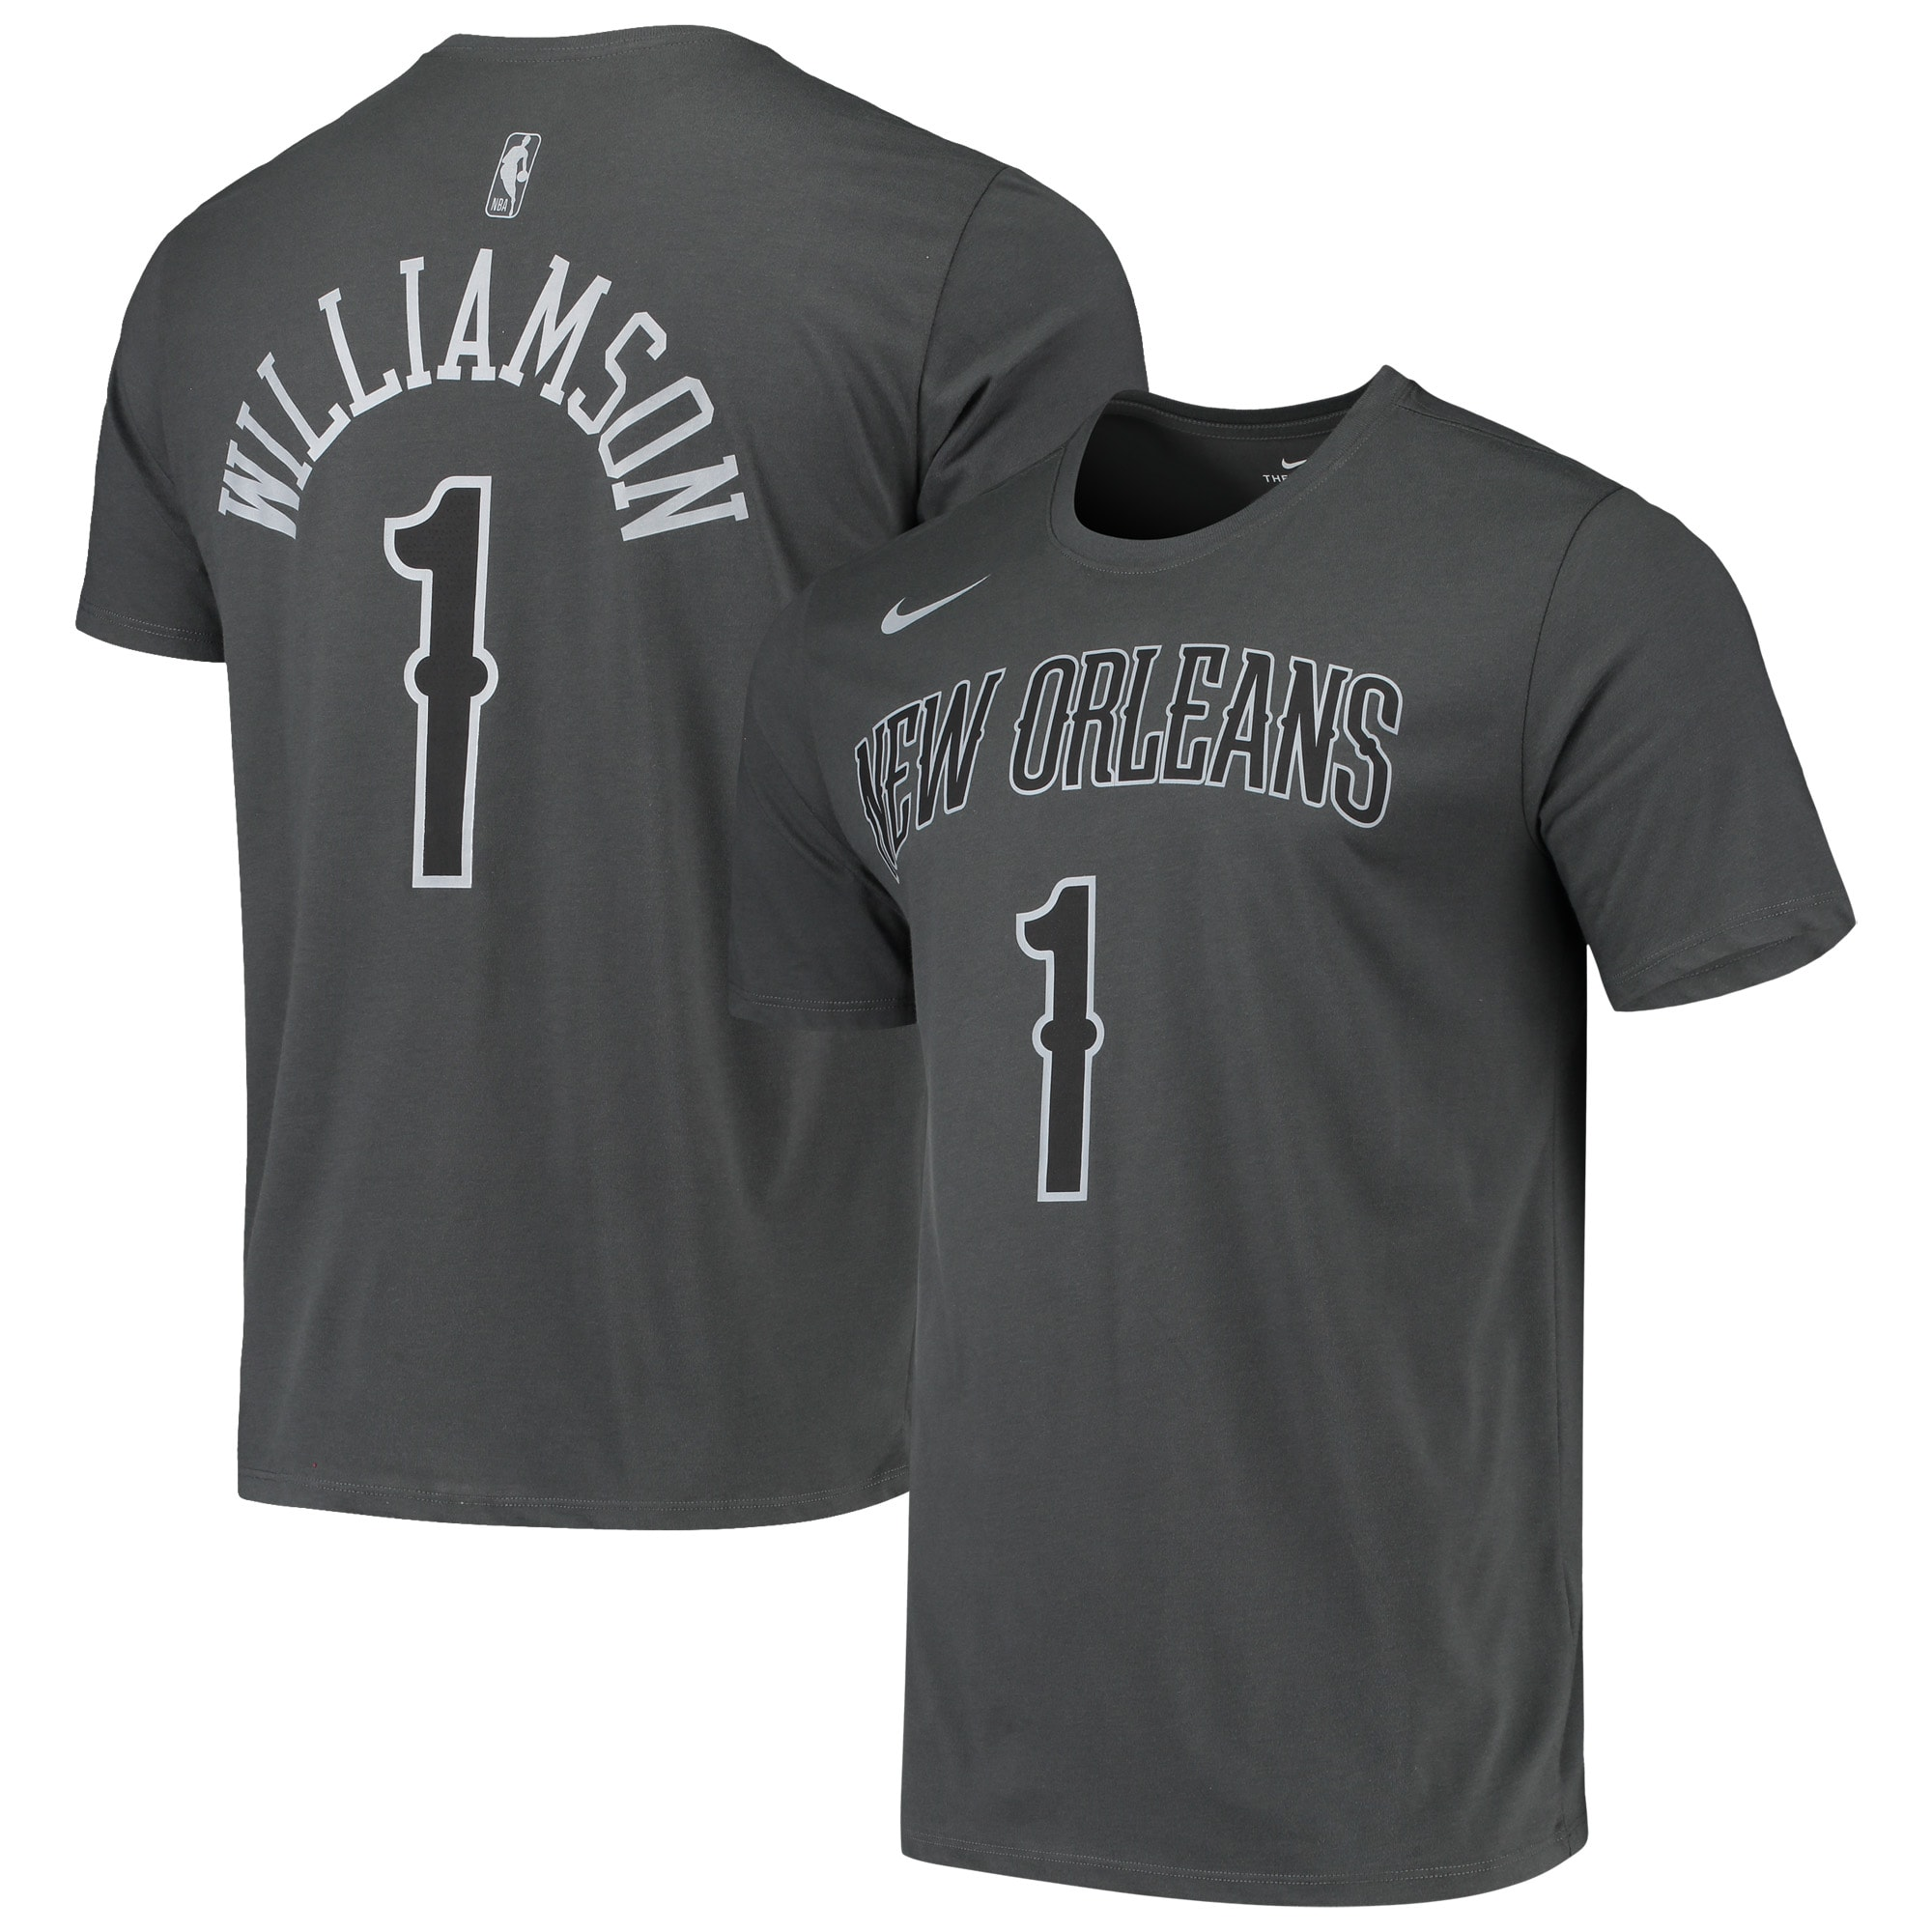 Zion Williamson New Orleans Pelicans Nike Icon Performance T-Shirt - Gray